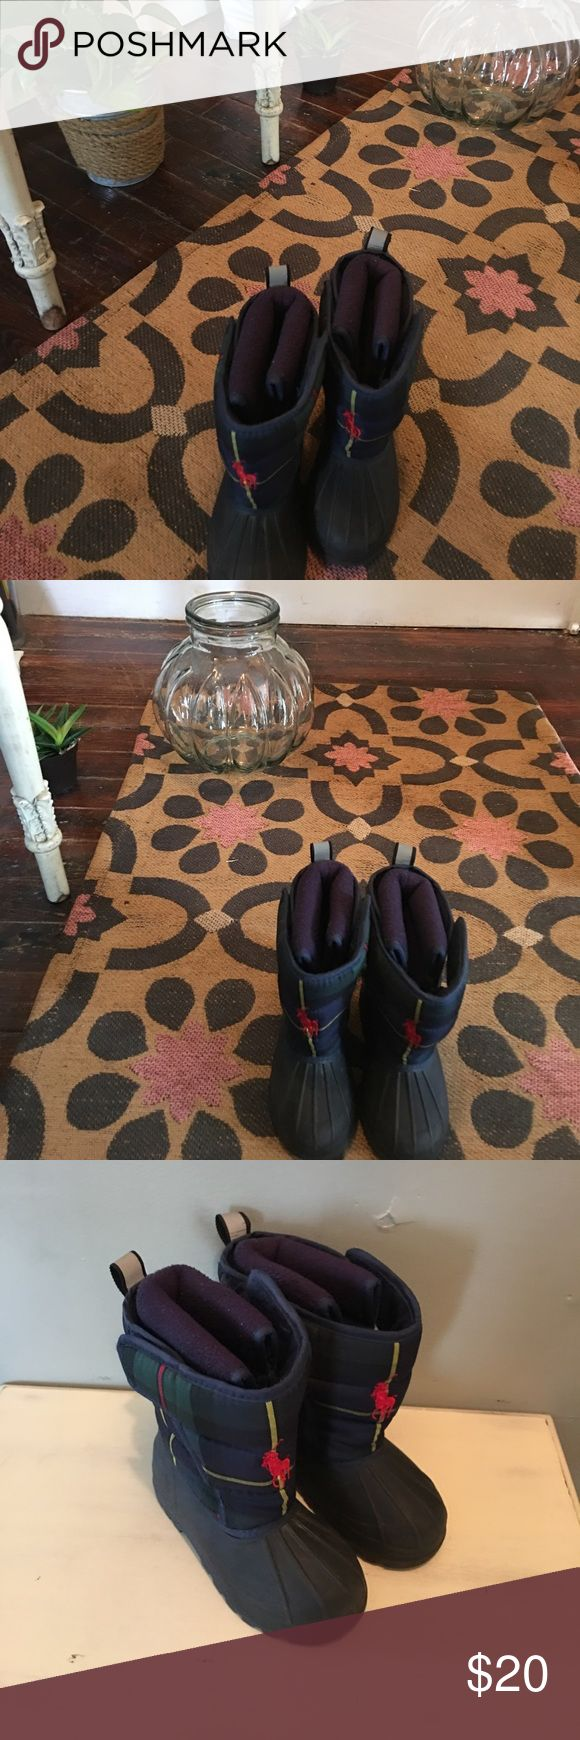 Kids RL Polo boots Size 9 great condition Ralph Lauren Shoes Boots